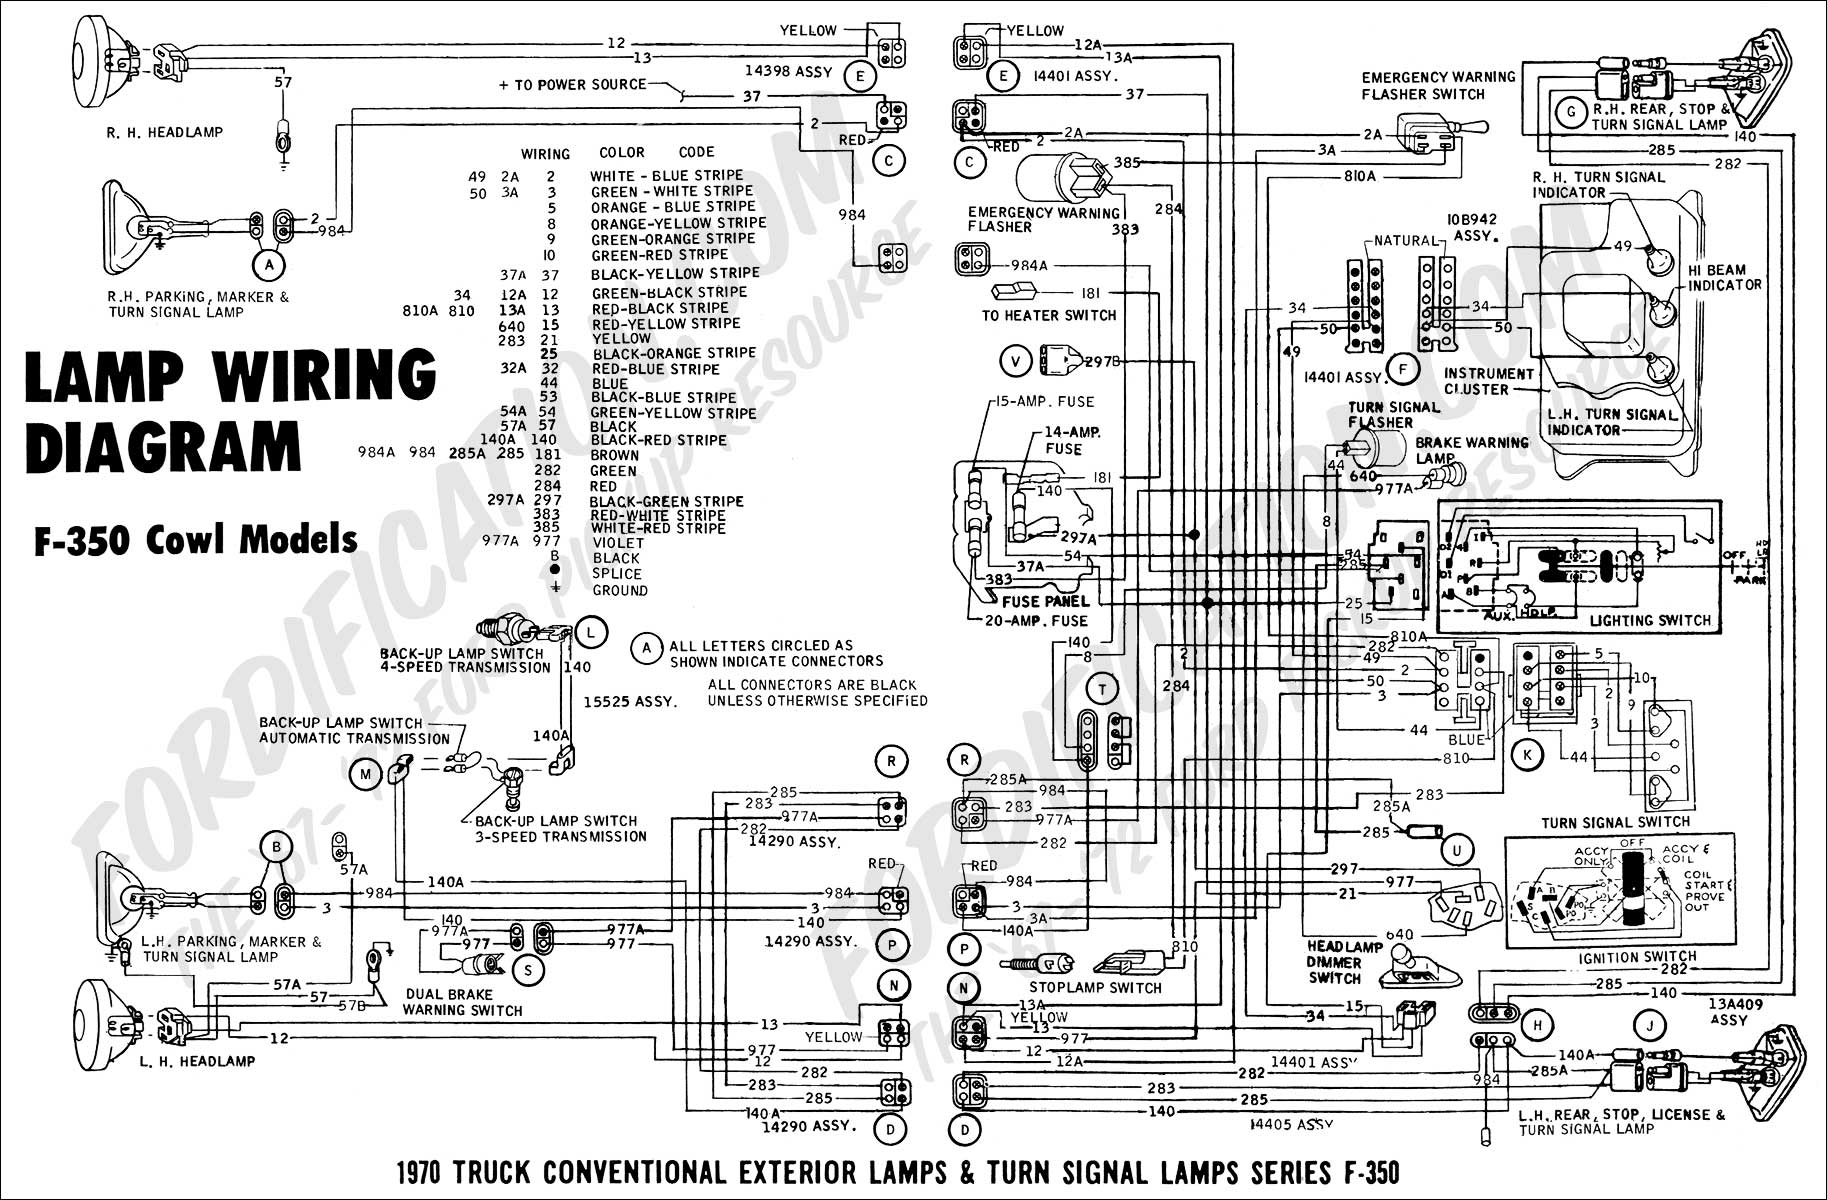 2001 ford f150 headlight wiring diagram lincoln 225 welder f350 schematics schematic 1985 f 350 wire diagrams best library 1995